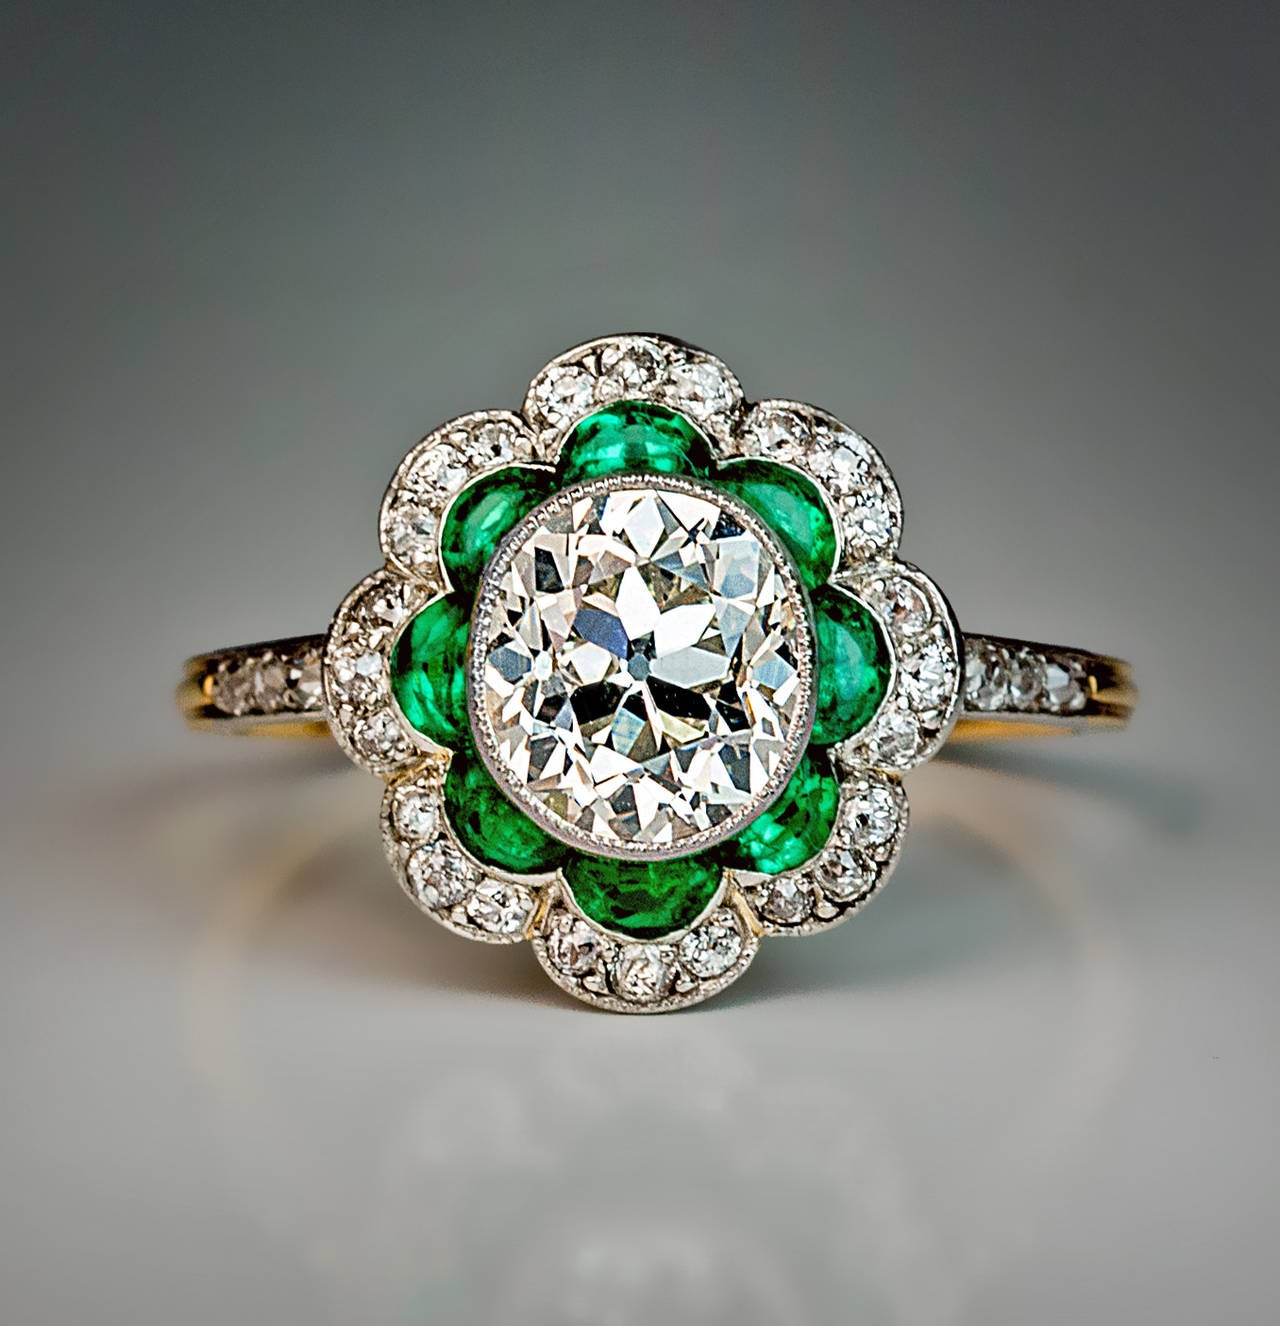 1920s Art Deco Emerald Diamond Platinum Engagement Ring 5